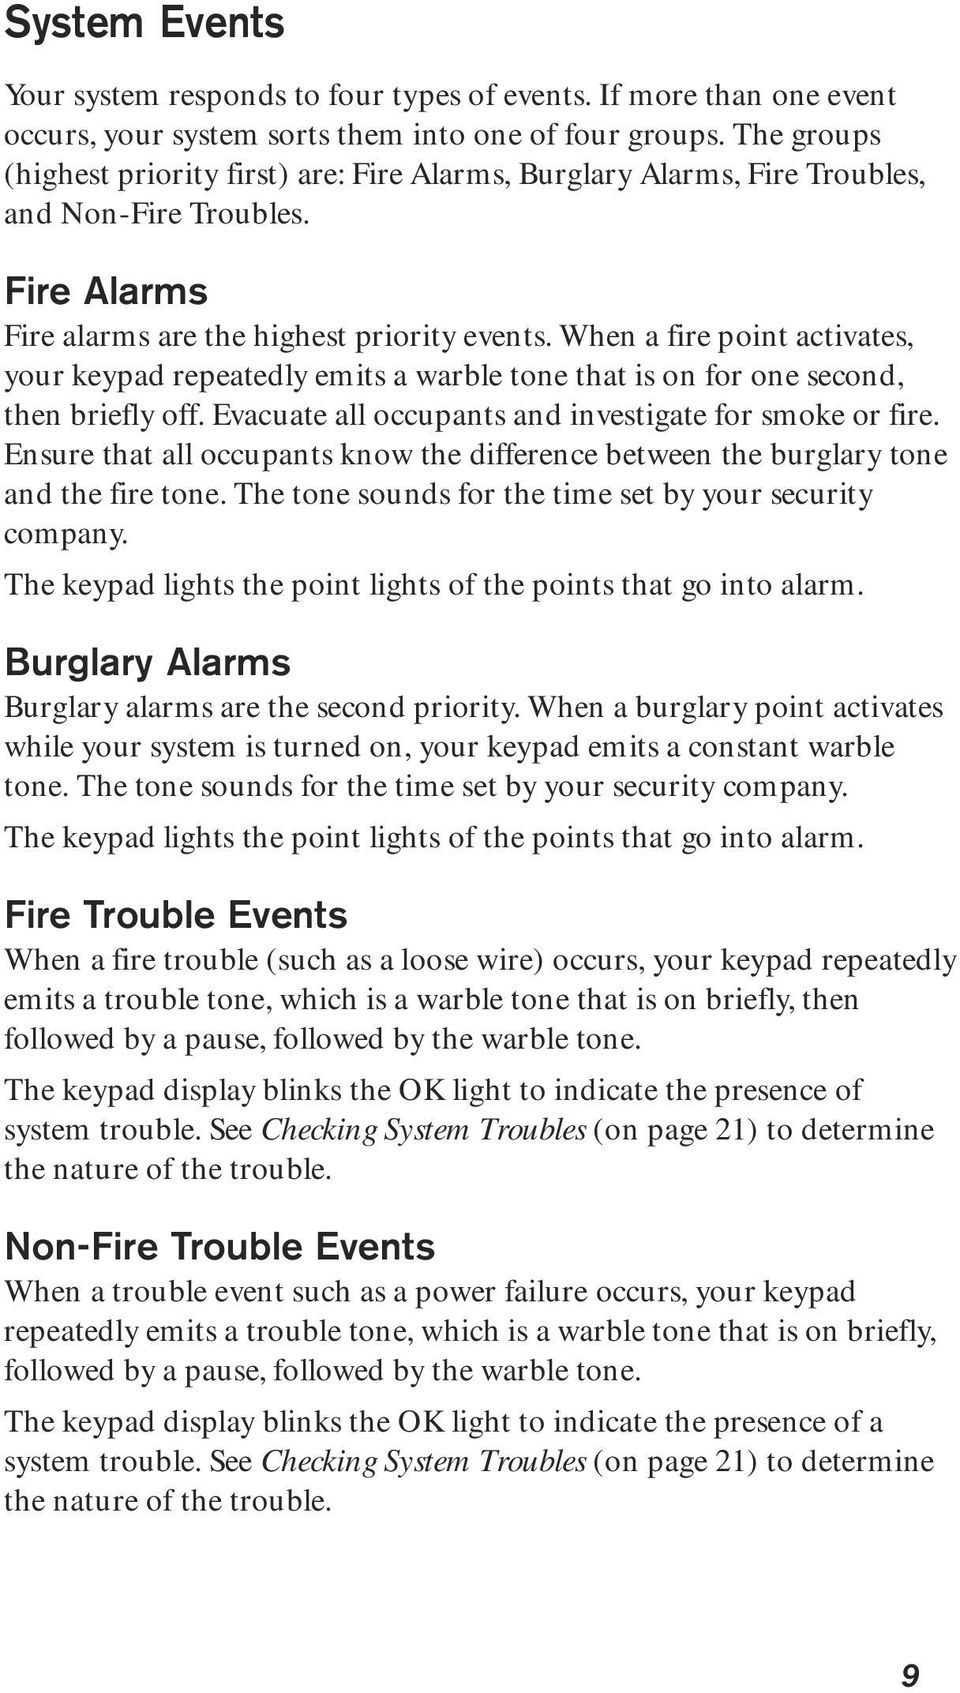 When a fire point activates, your keypad repeatedly emits a warble tone that is on for one second, then briefly off. Evacuate all occupants and investigate for smoke or fire.